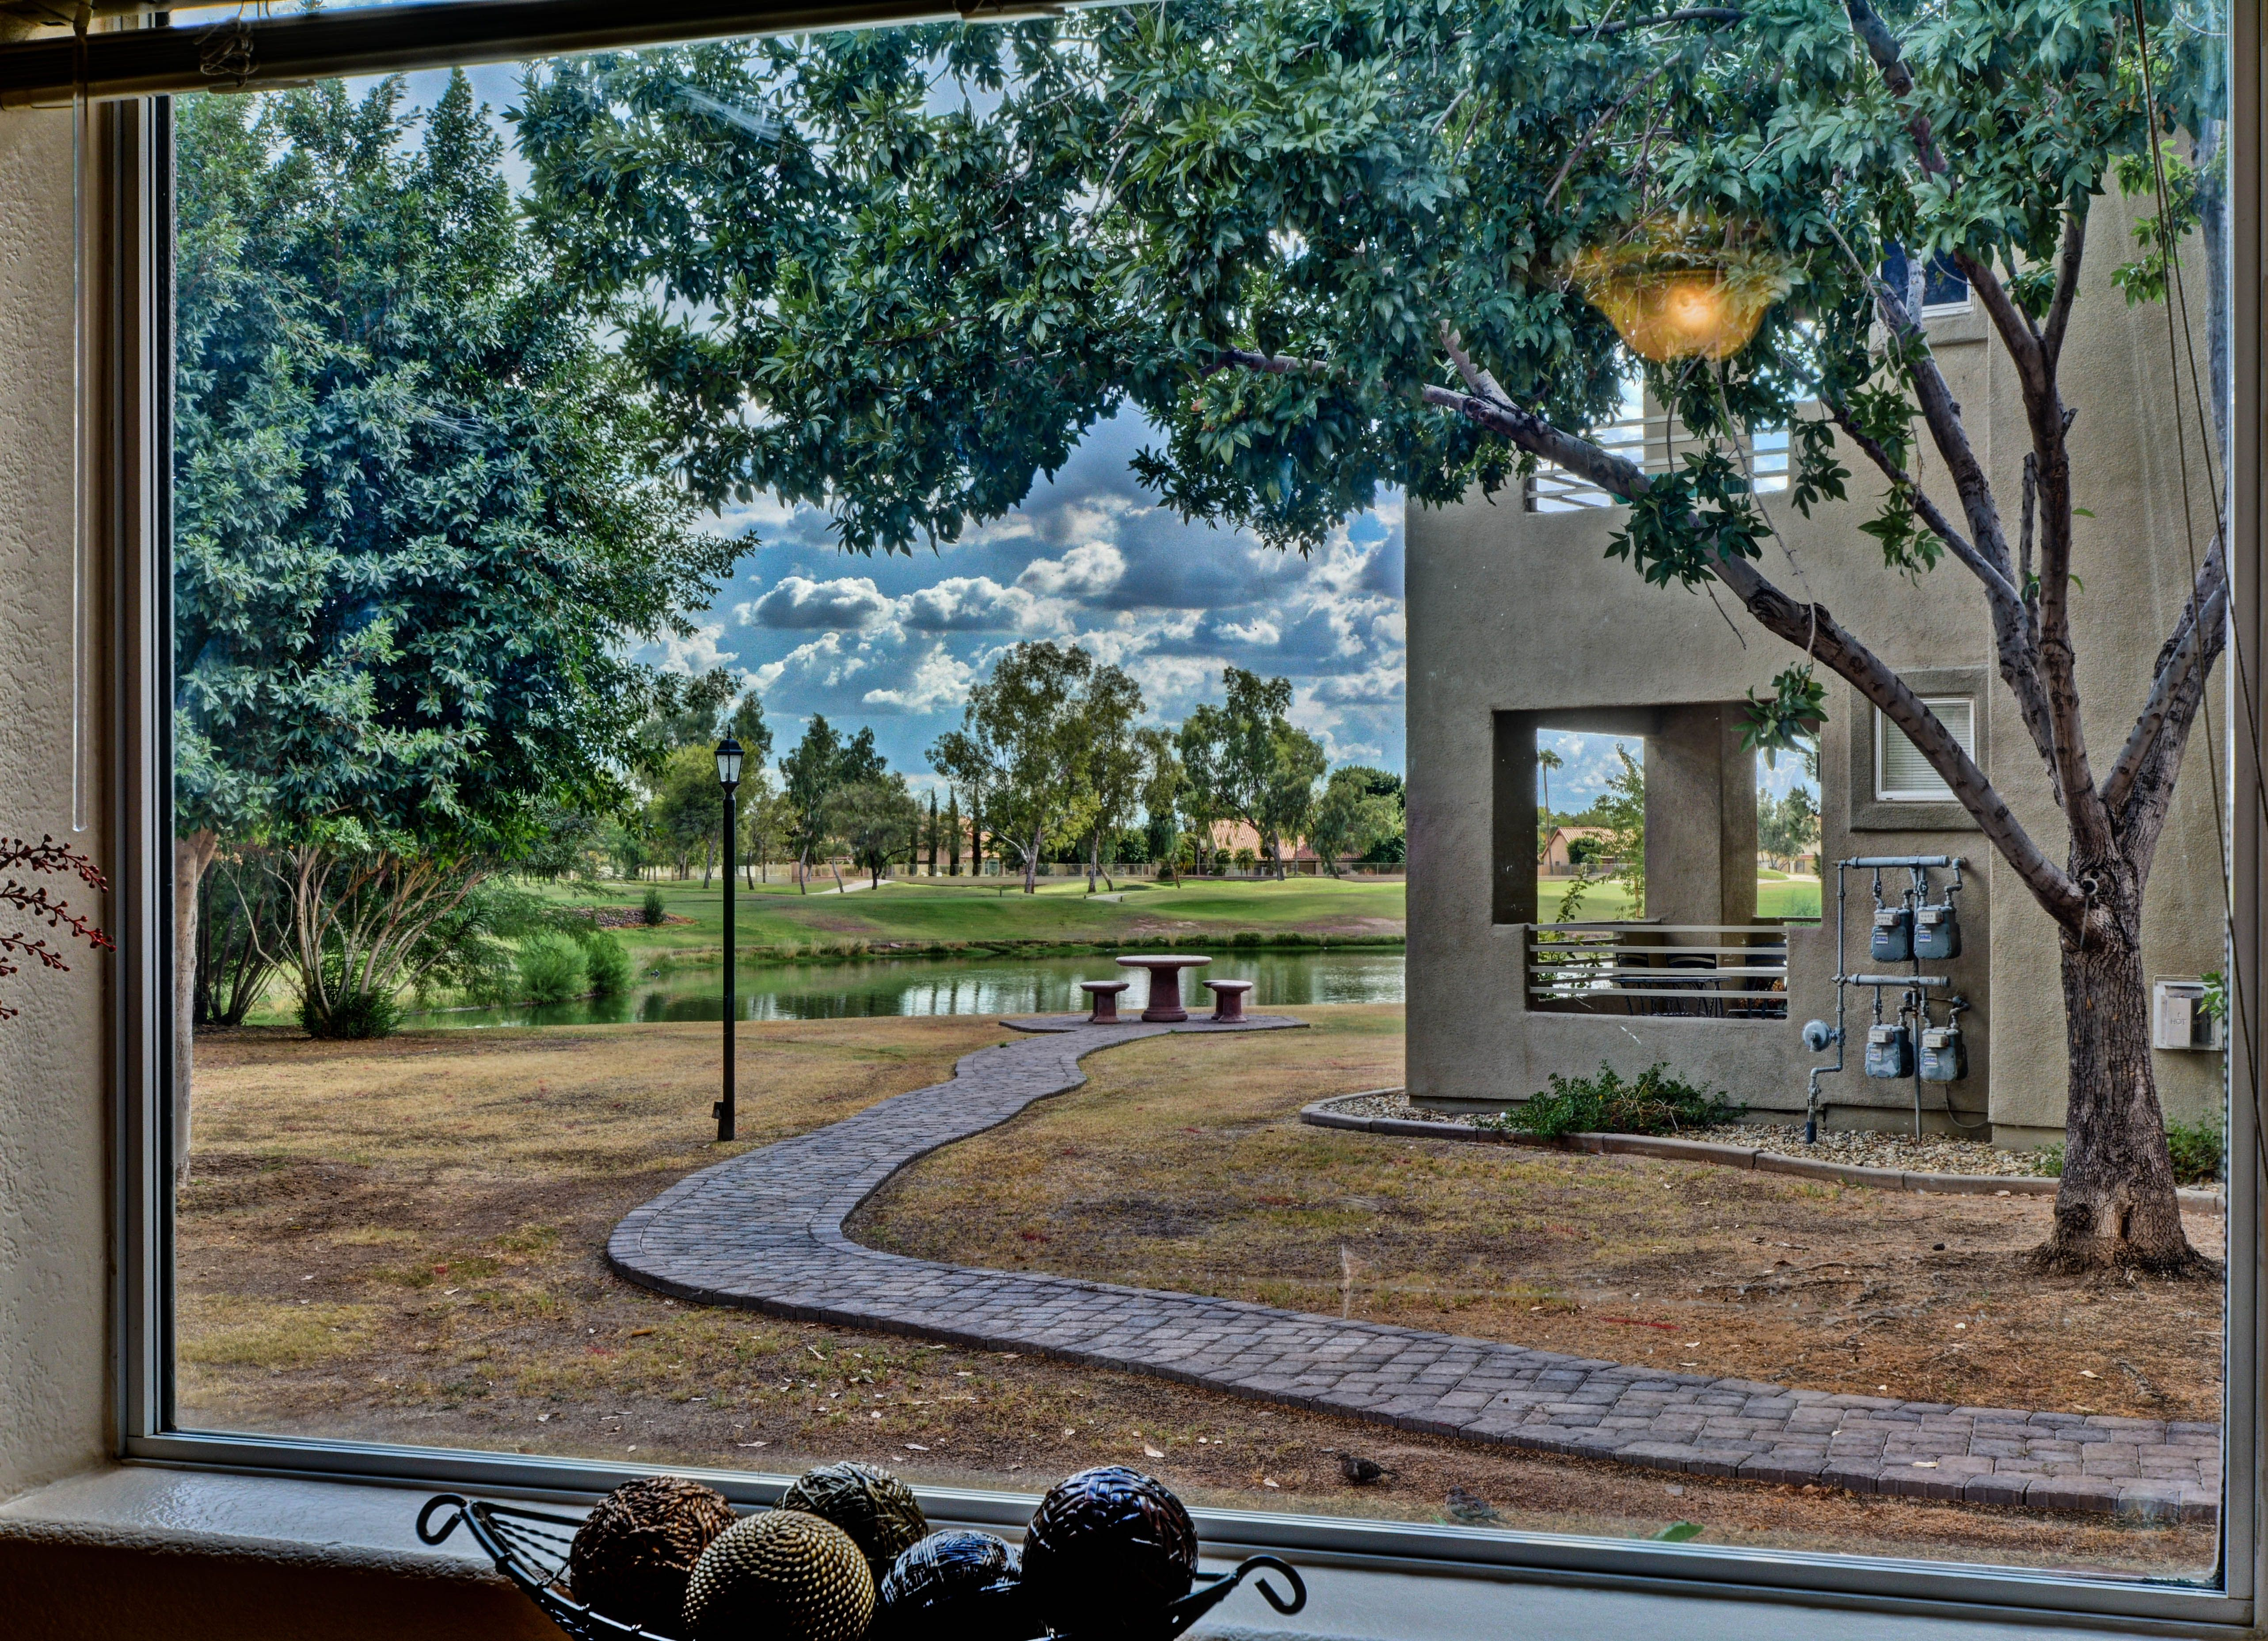 New Listing at Fairways at Arrowhead! Unit 1032 looking at Arrowhead Golf Course from your great room!